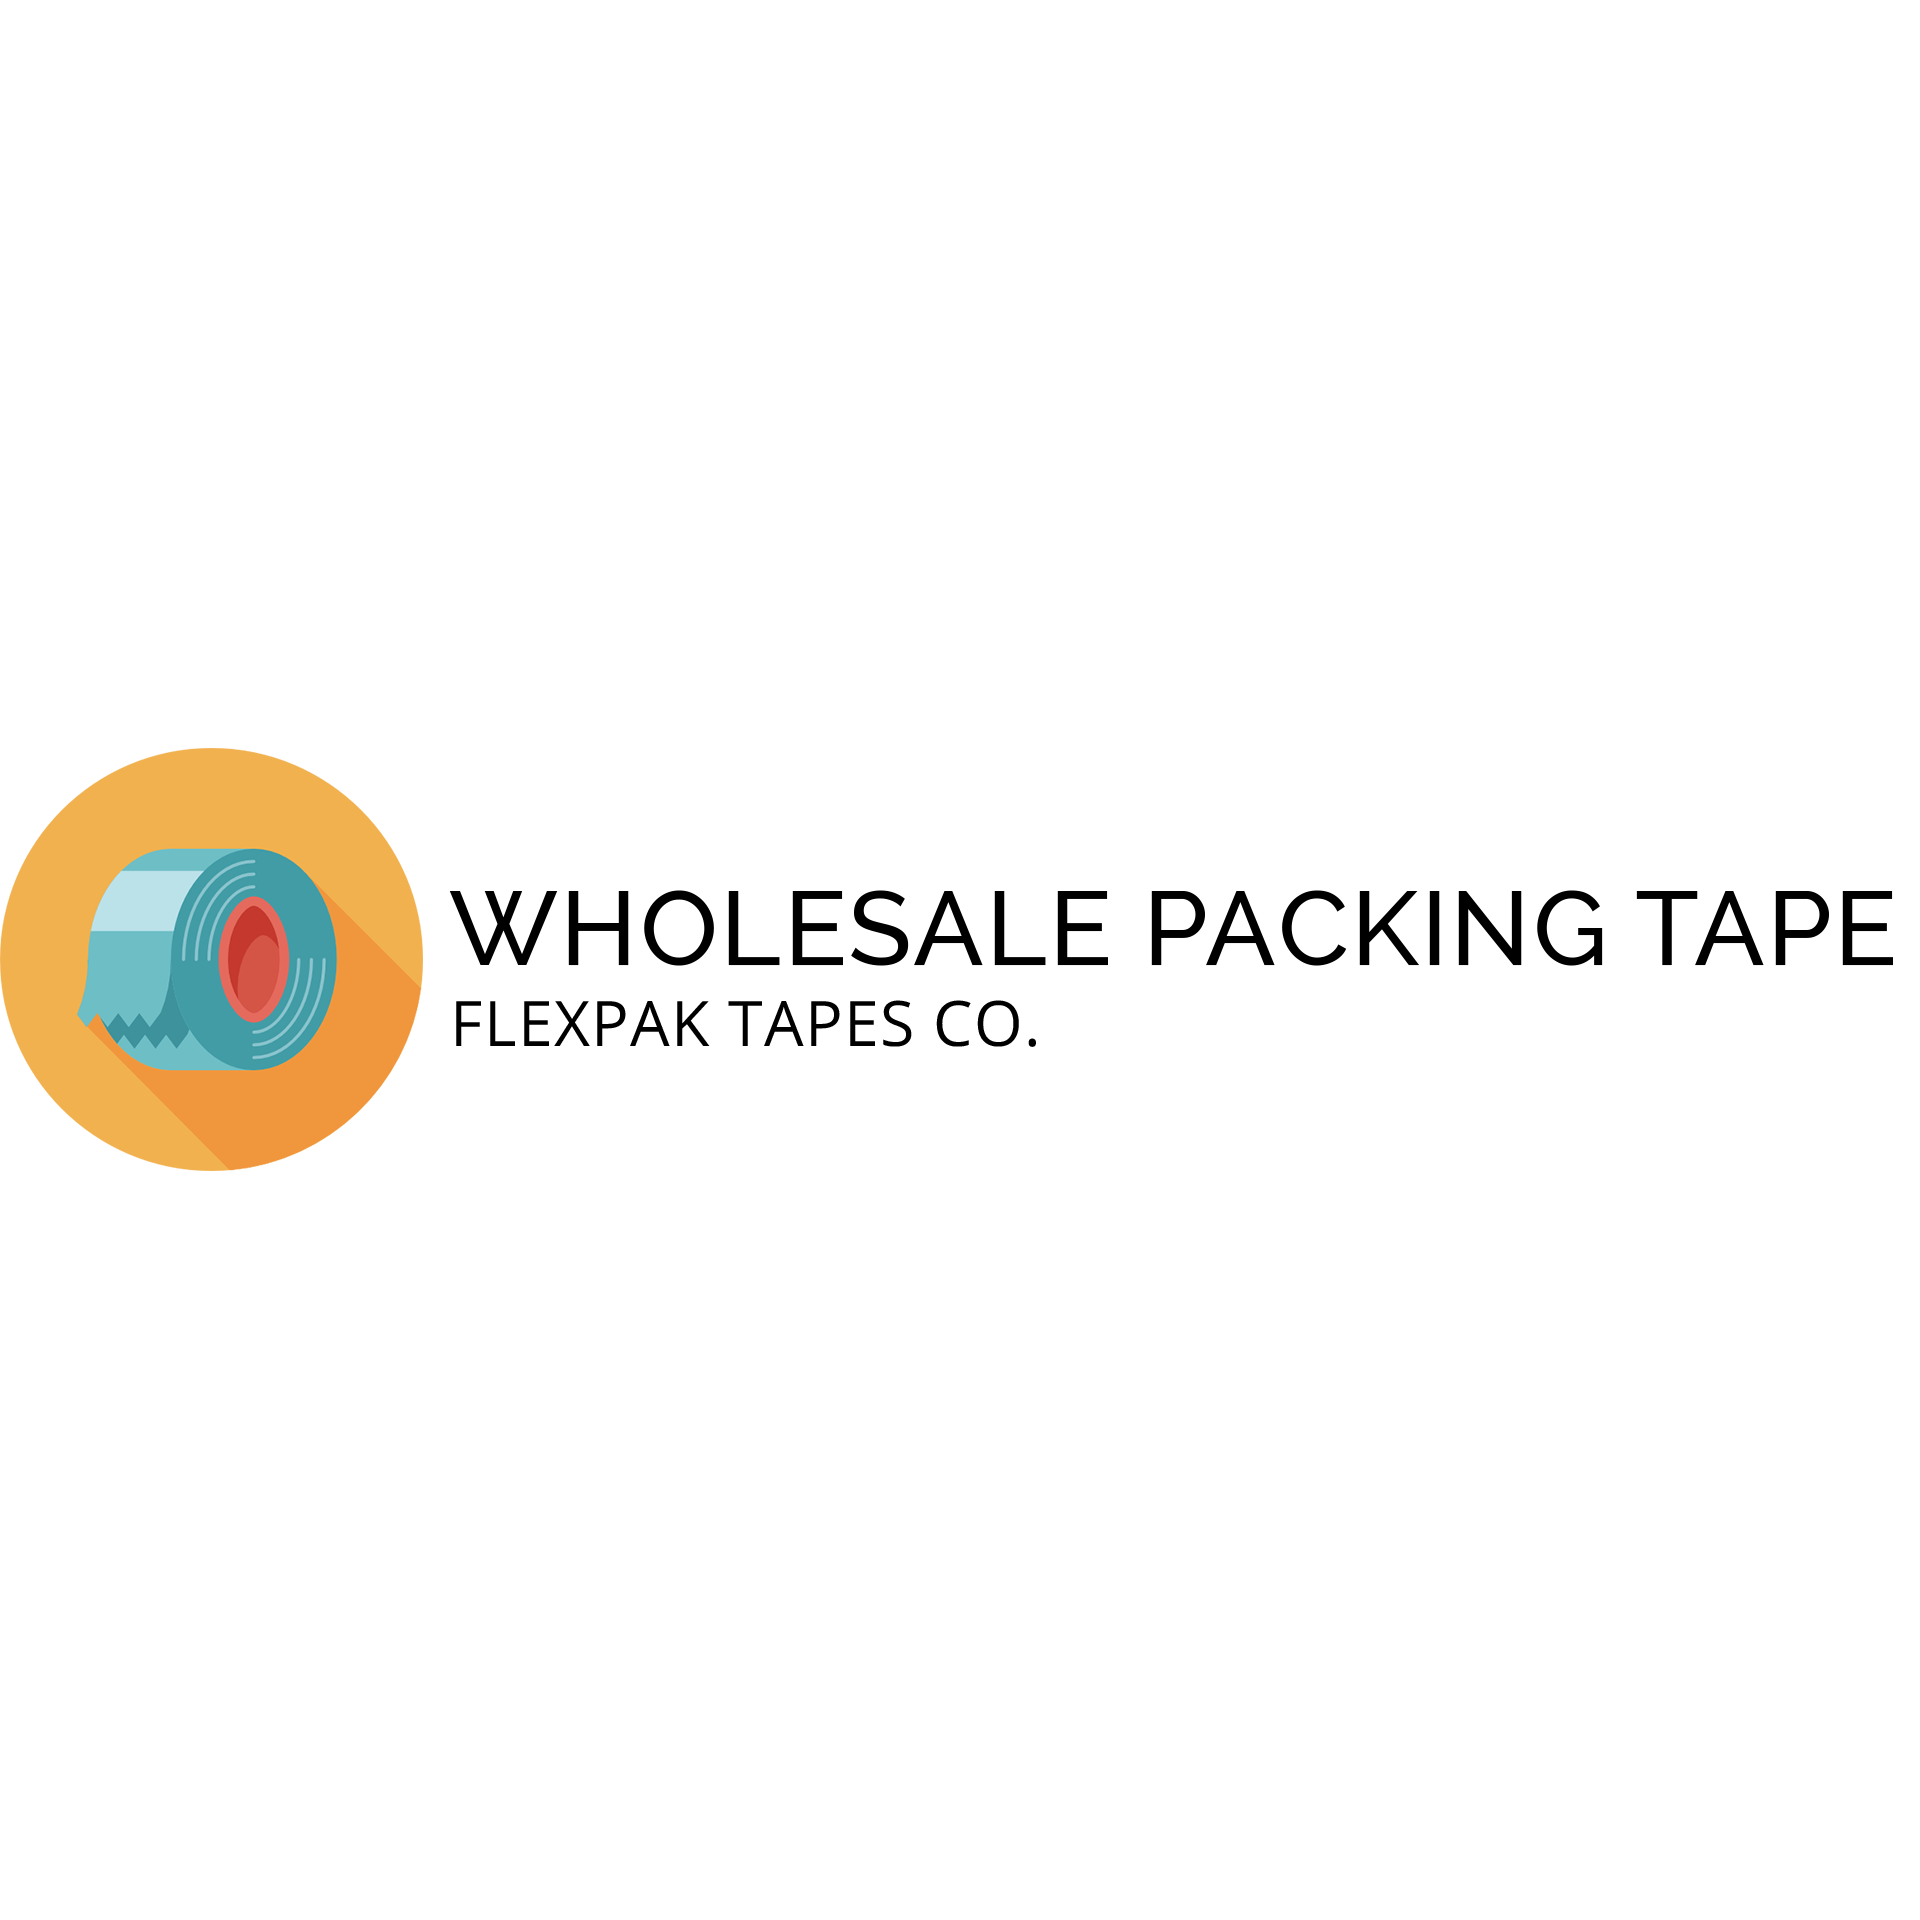 Wholesale Packing Tape image 3